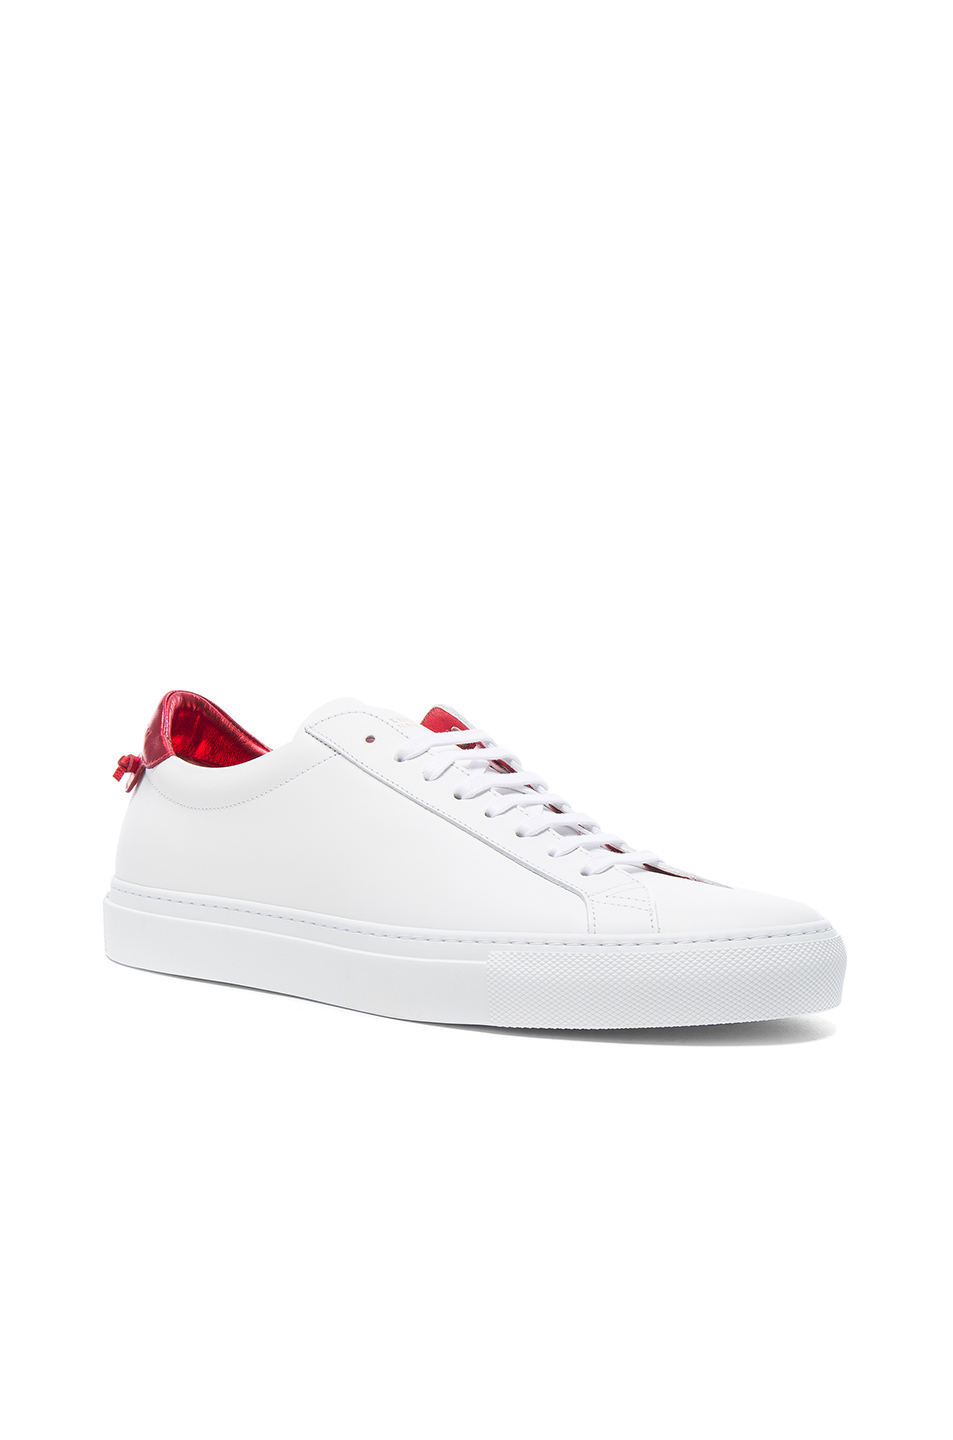 Givenchy Leather Urban Street Low Top Sneakers in White